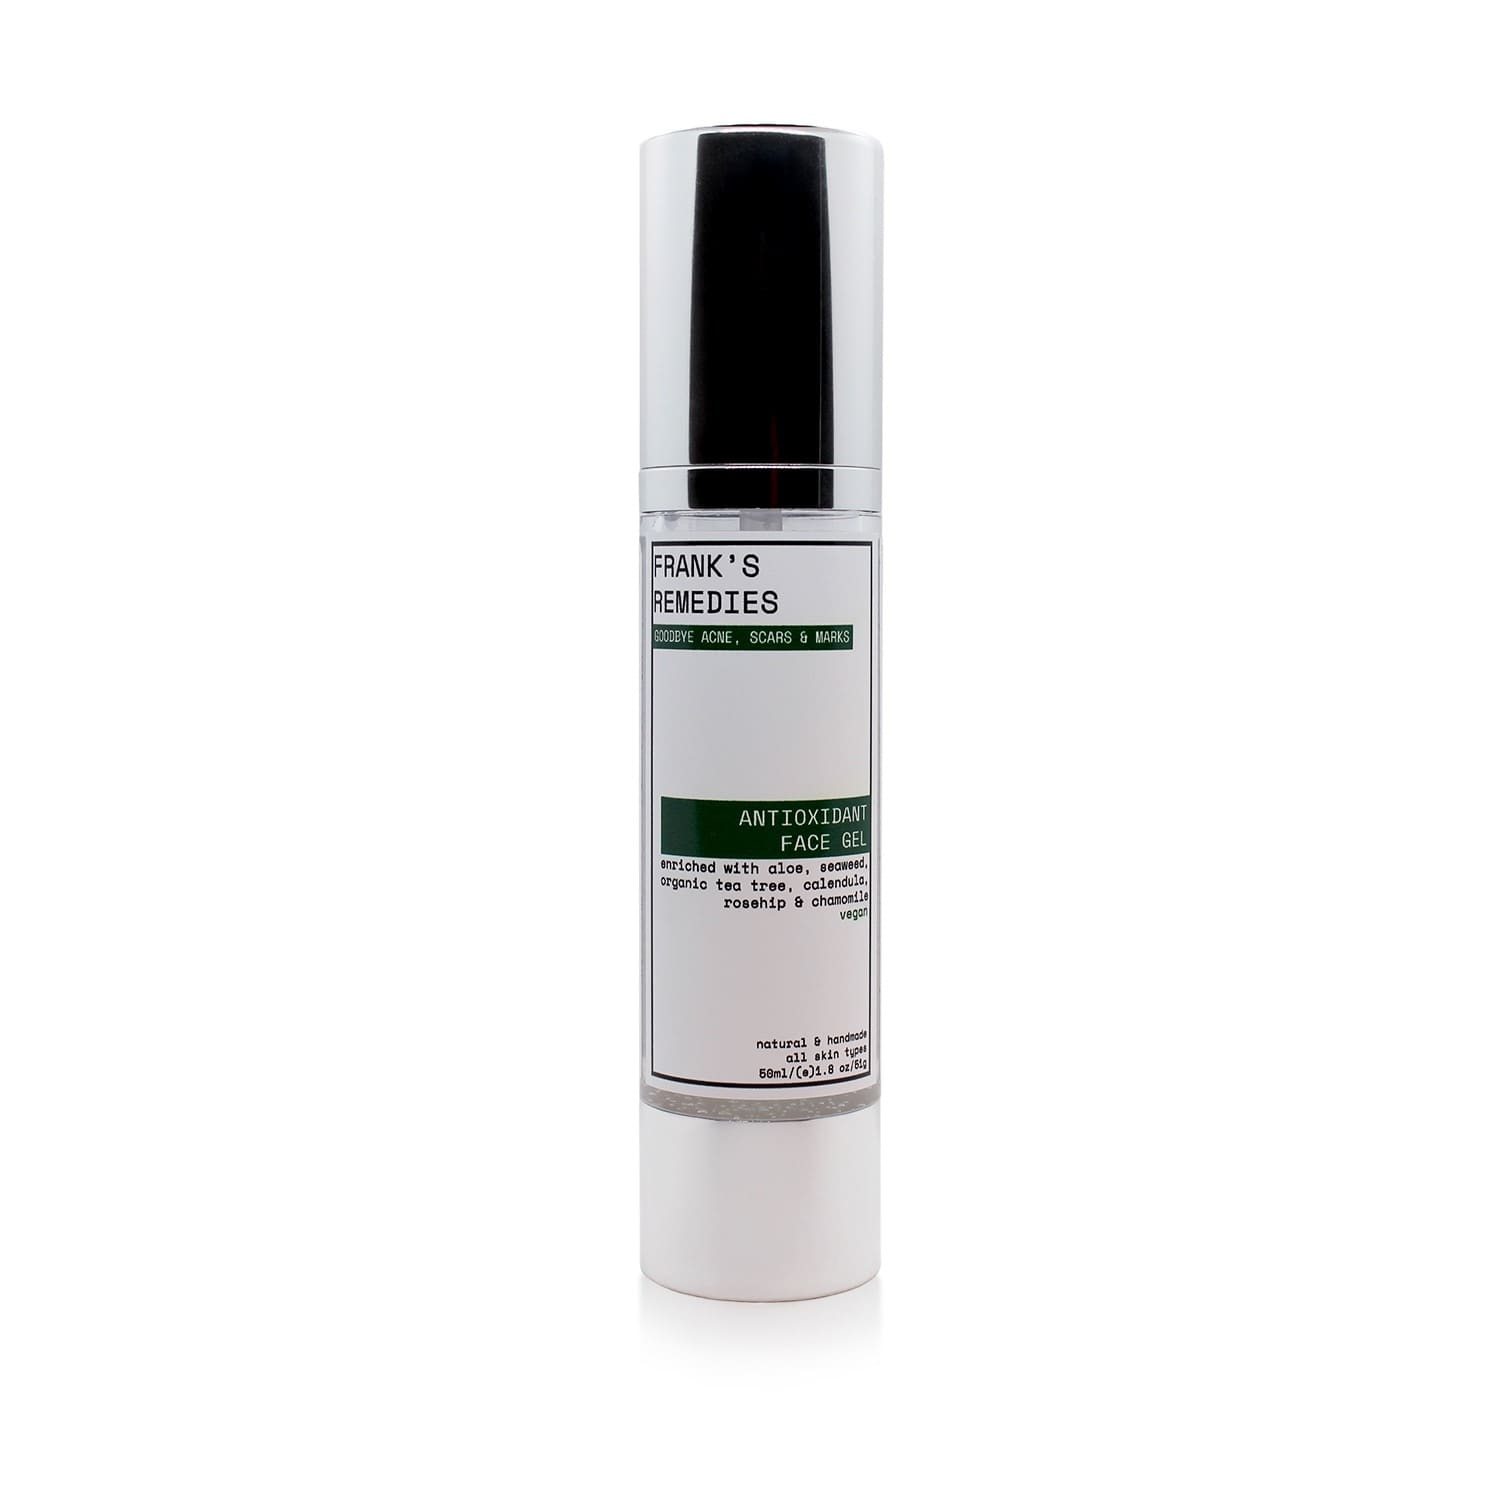 Antioxidant Face Gel | FRANK\'S REMEDIES | Wolf & Badger